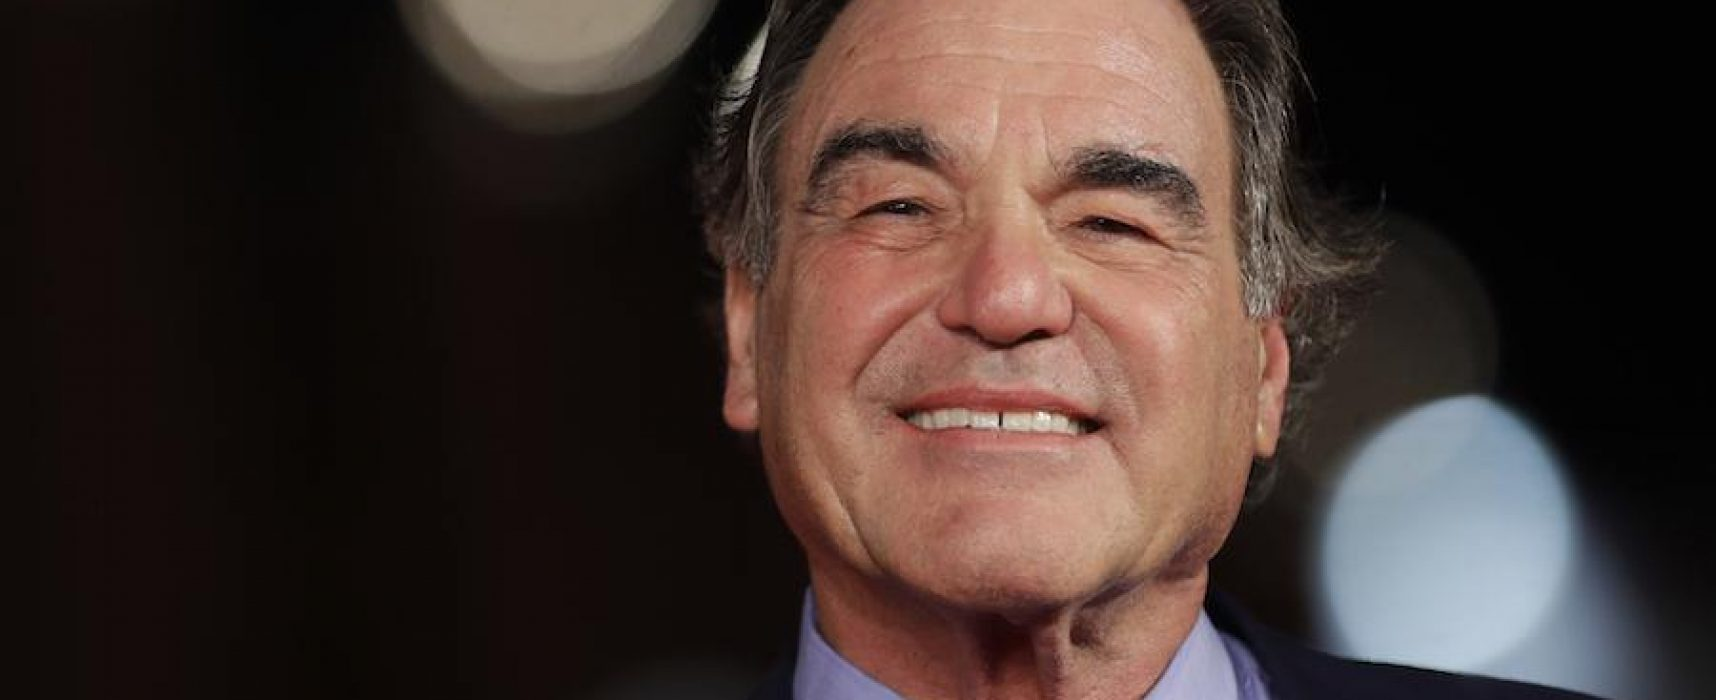 Oliver Stone has launched Putin's re-election campaign